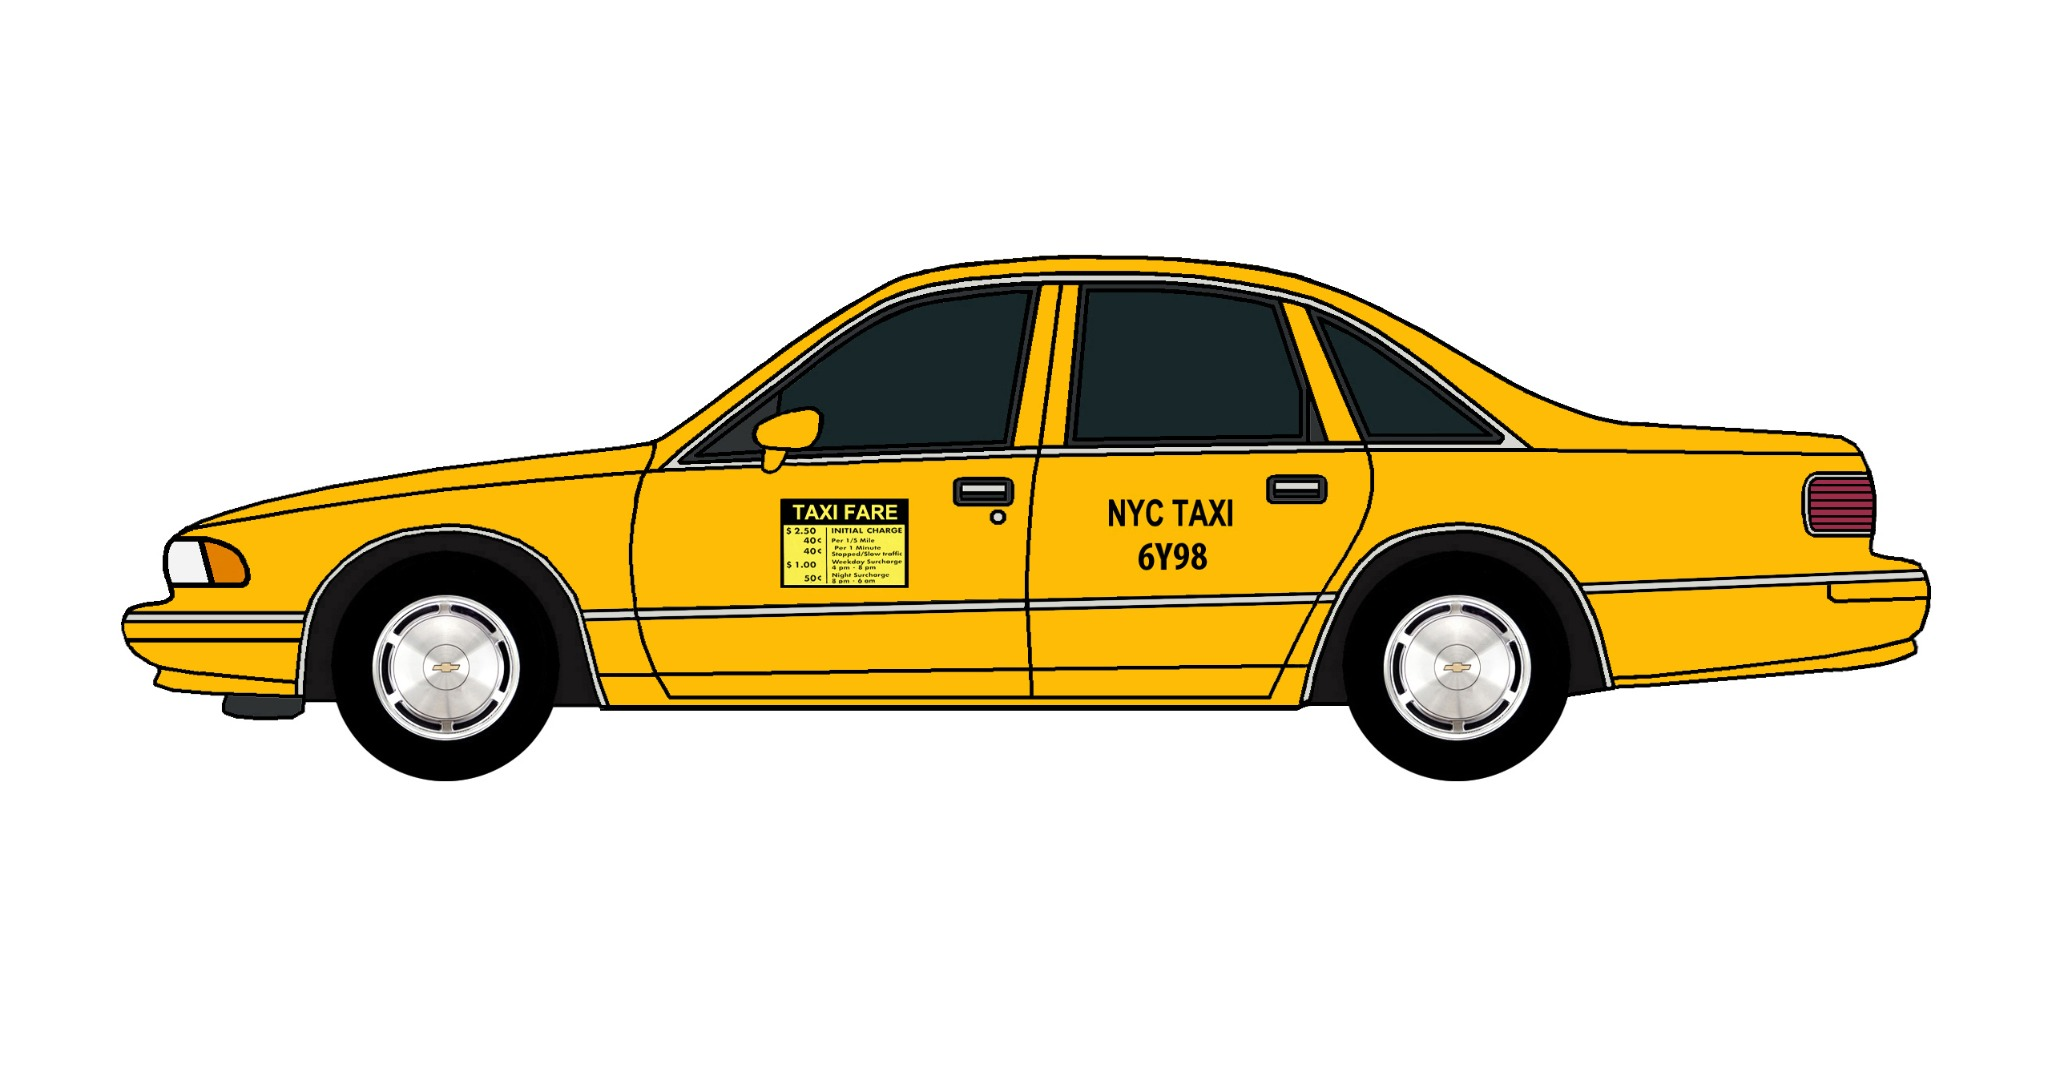 1994 Chevy Caprice NYC TAXI